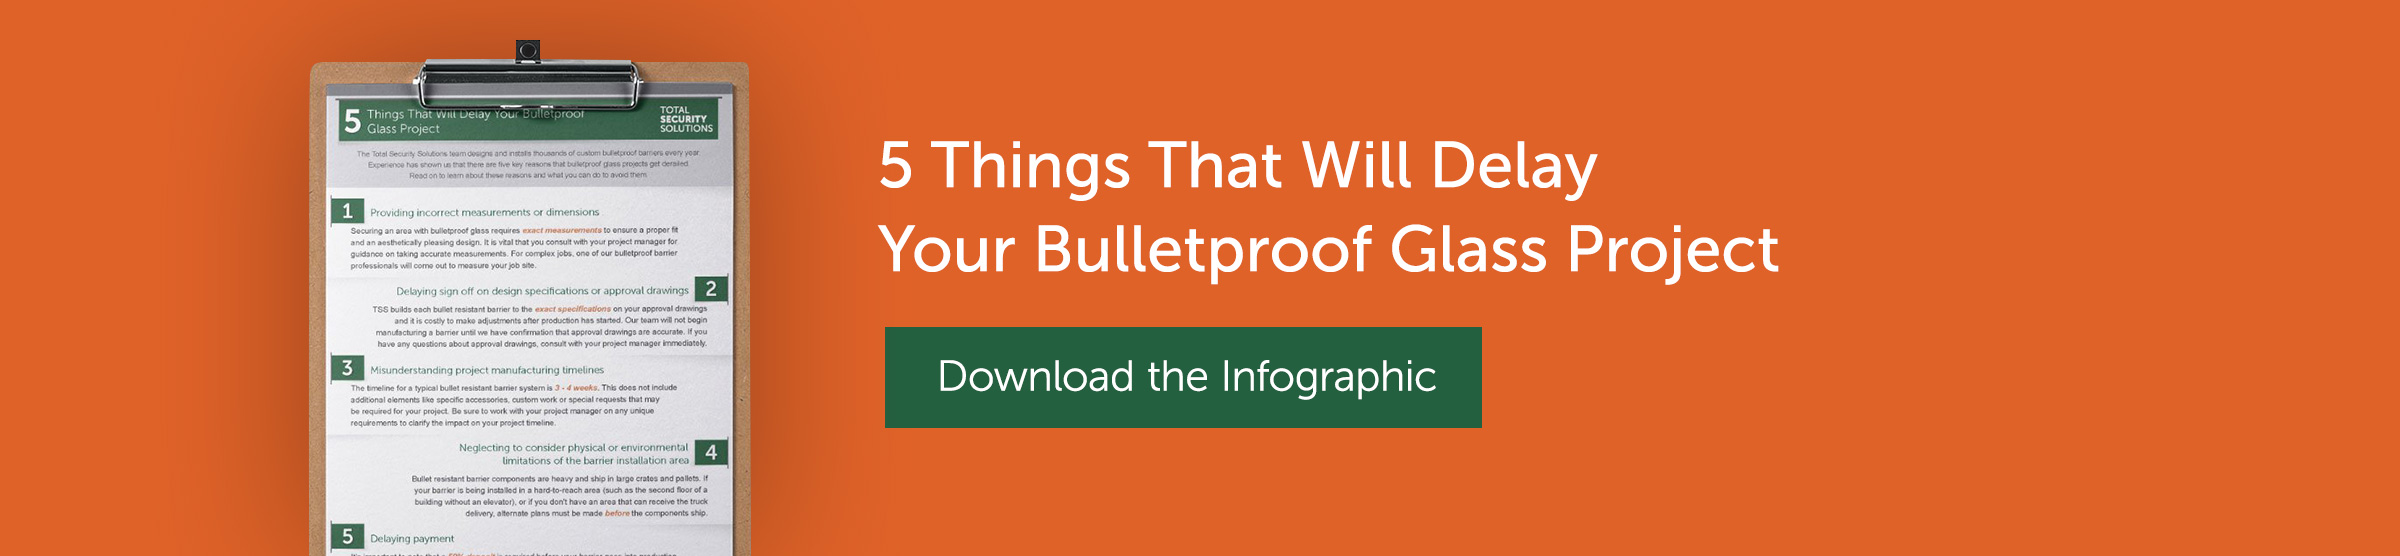 5 Ways to Delay Your Bulletproof Project